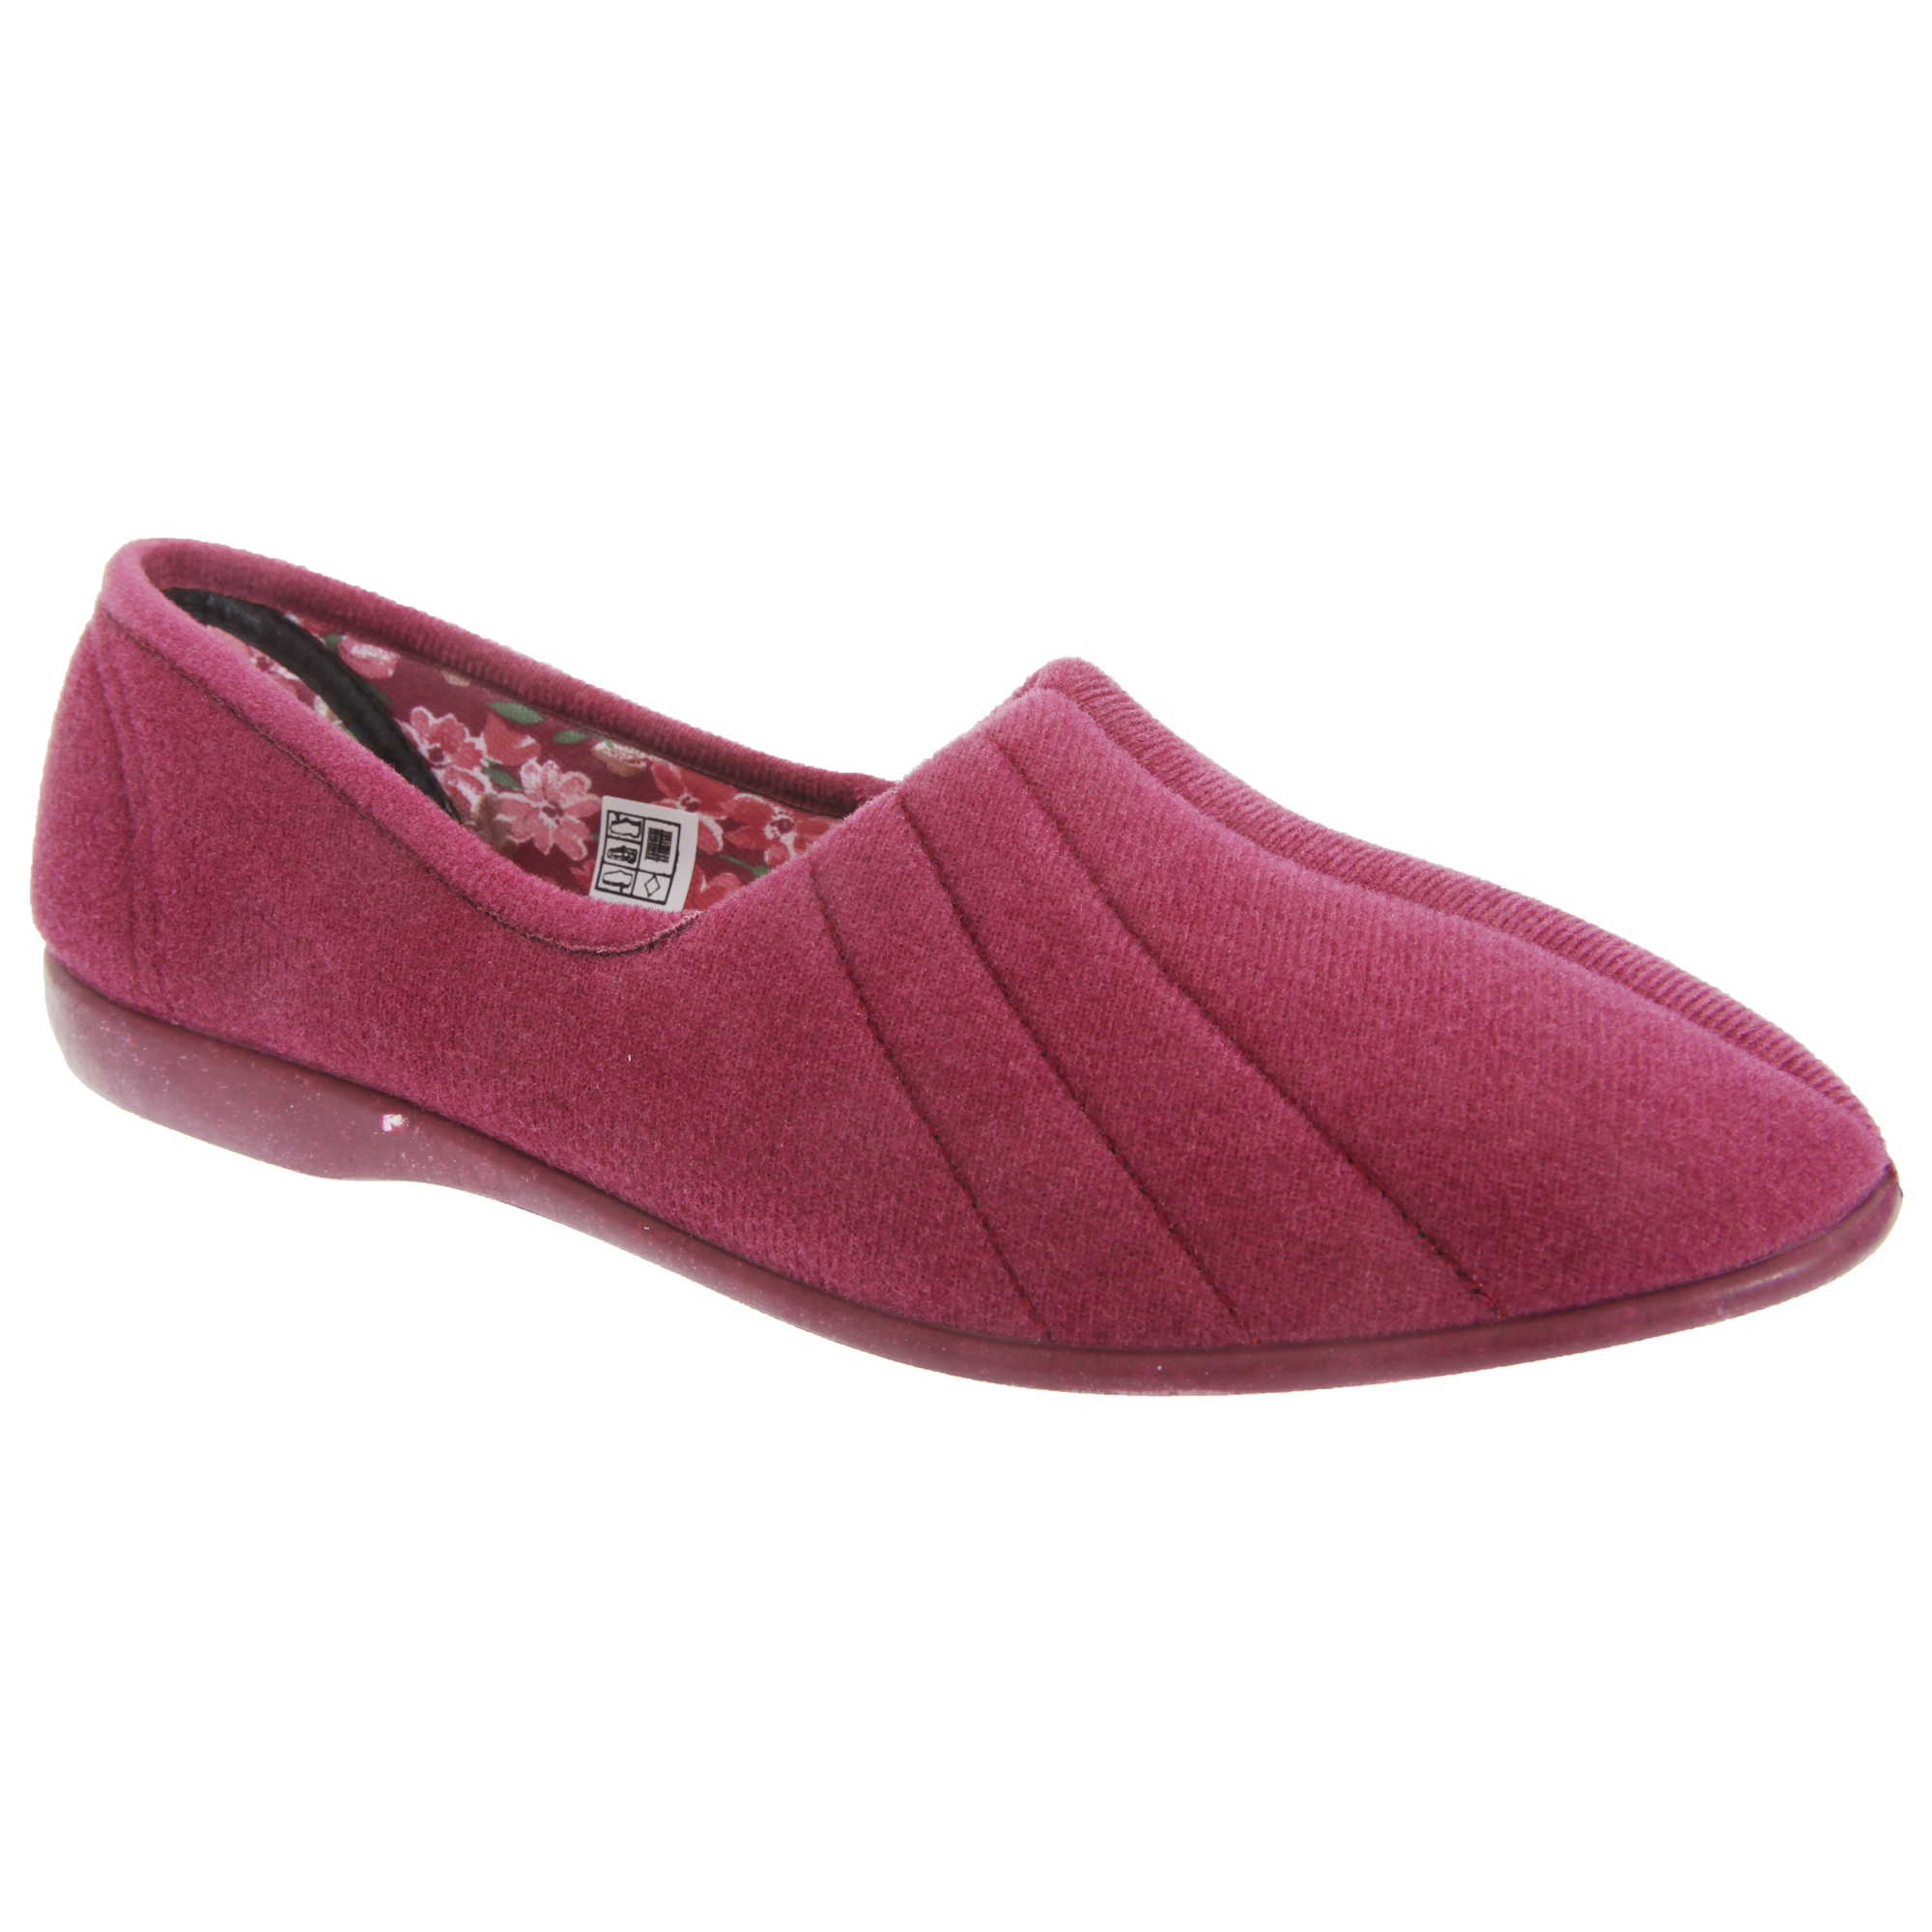 GBS Audrey Womens /Ladies Indoor House Slipper Shoes /Slippers Sizes 5-11 | EBay